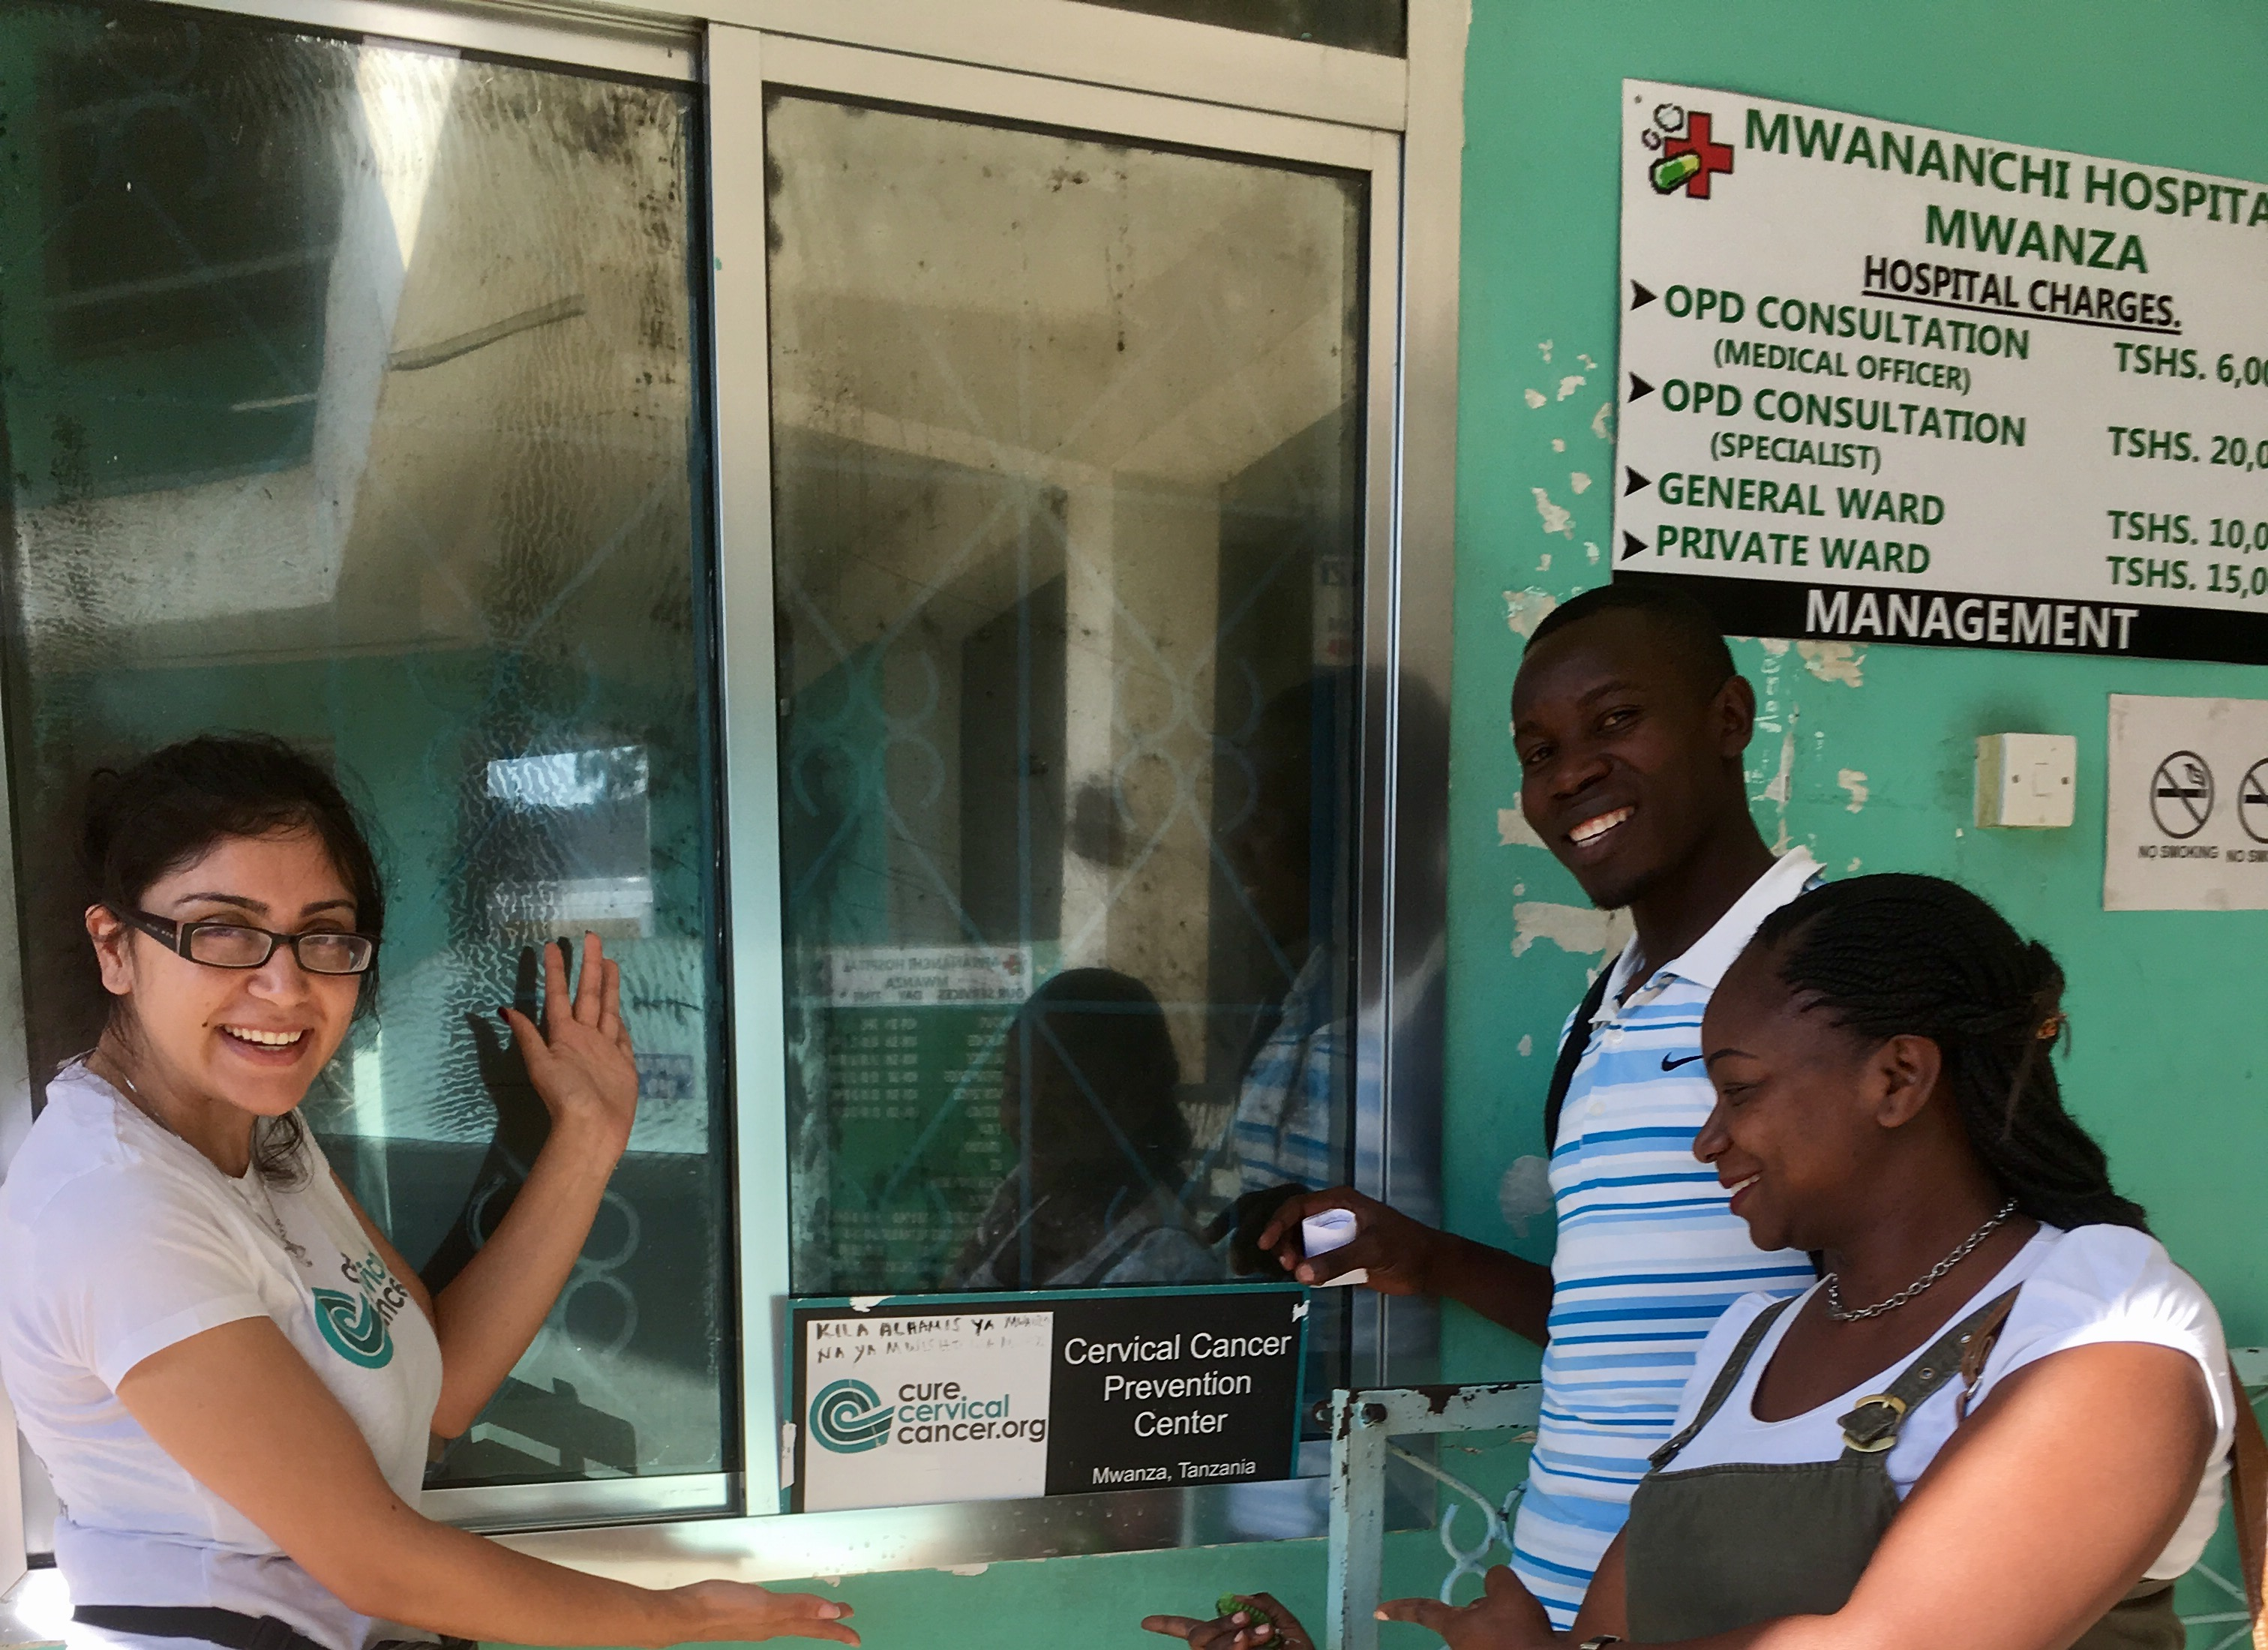 """Cervical Cancer Prevention Center"" in Mwananchi, Tanzania"